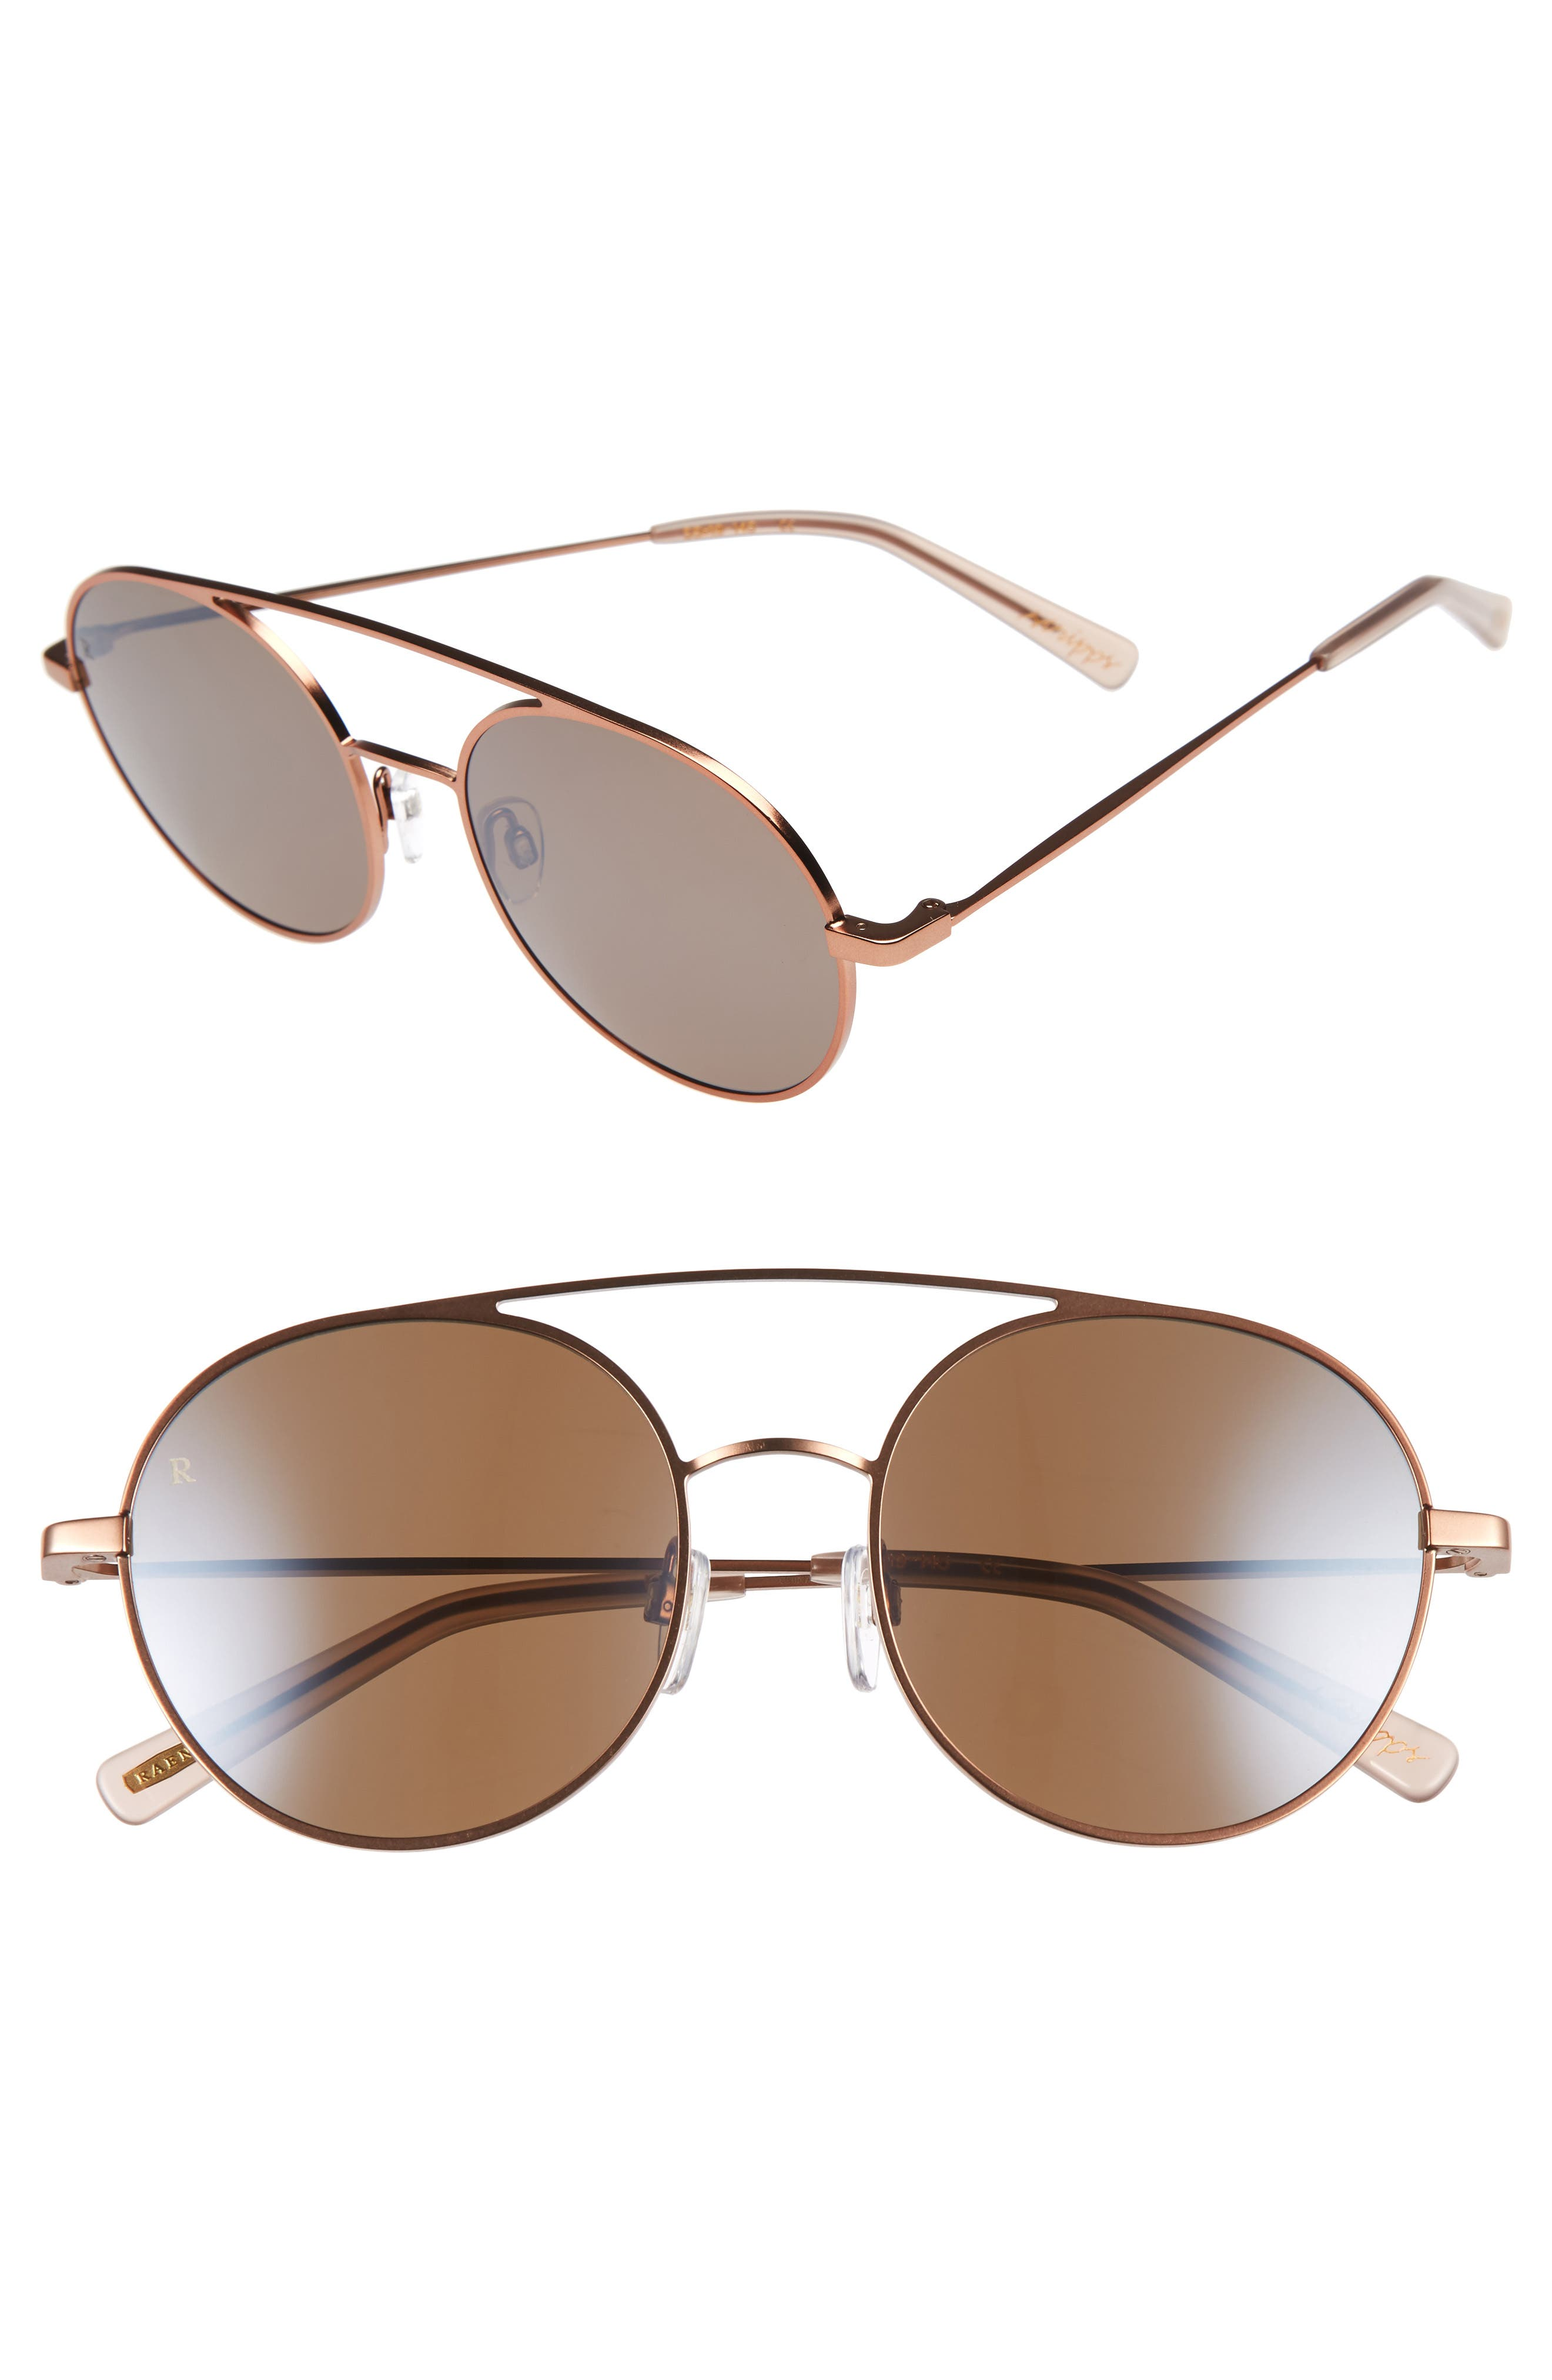 Scripps 55mm Round Sunglasses,                         Main,                         color,